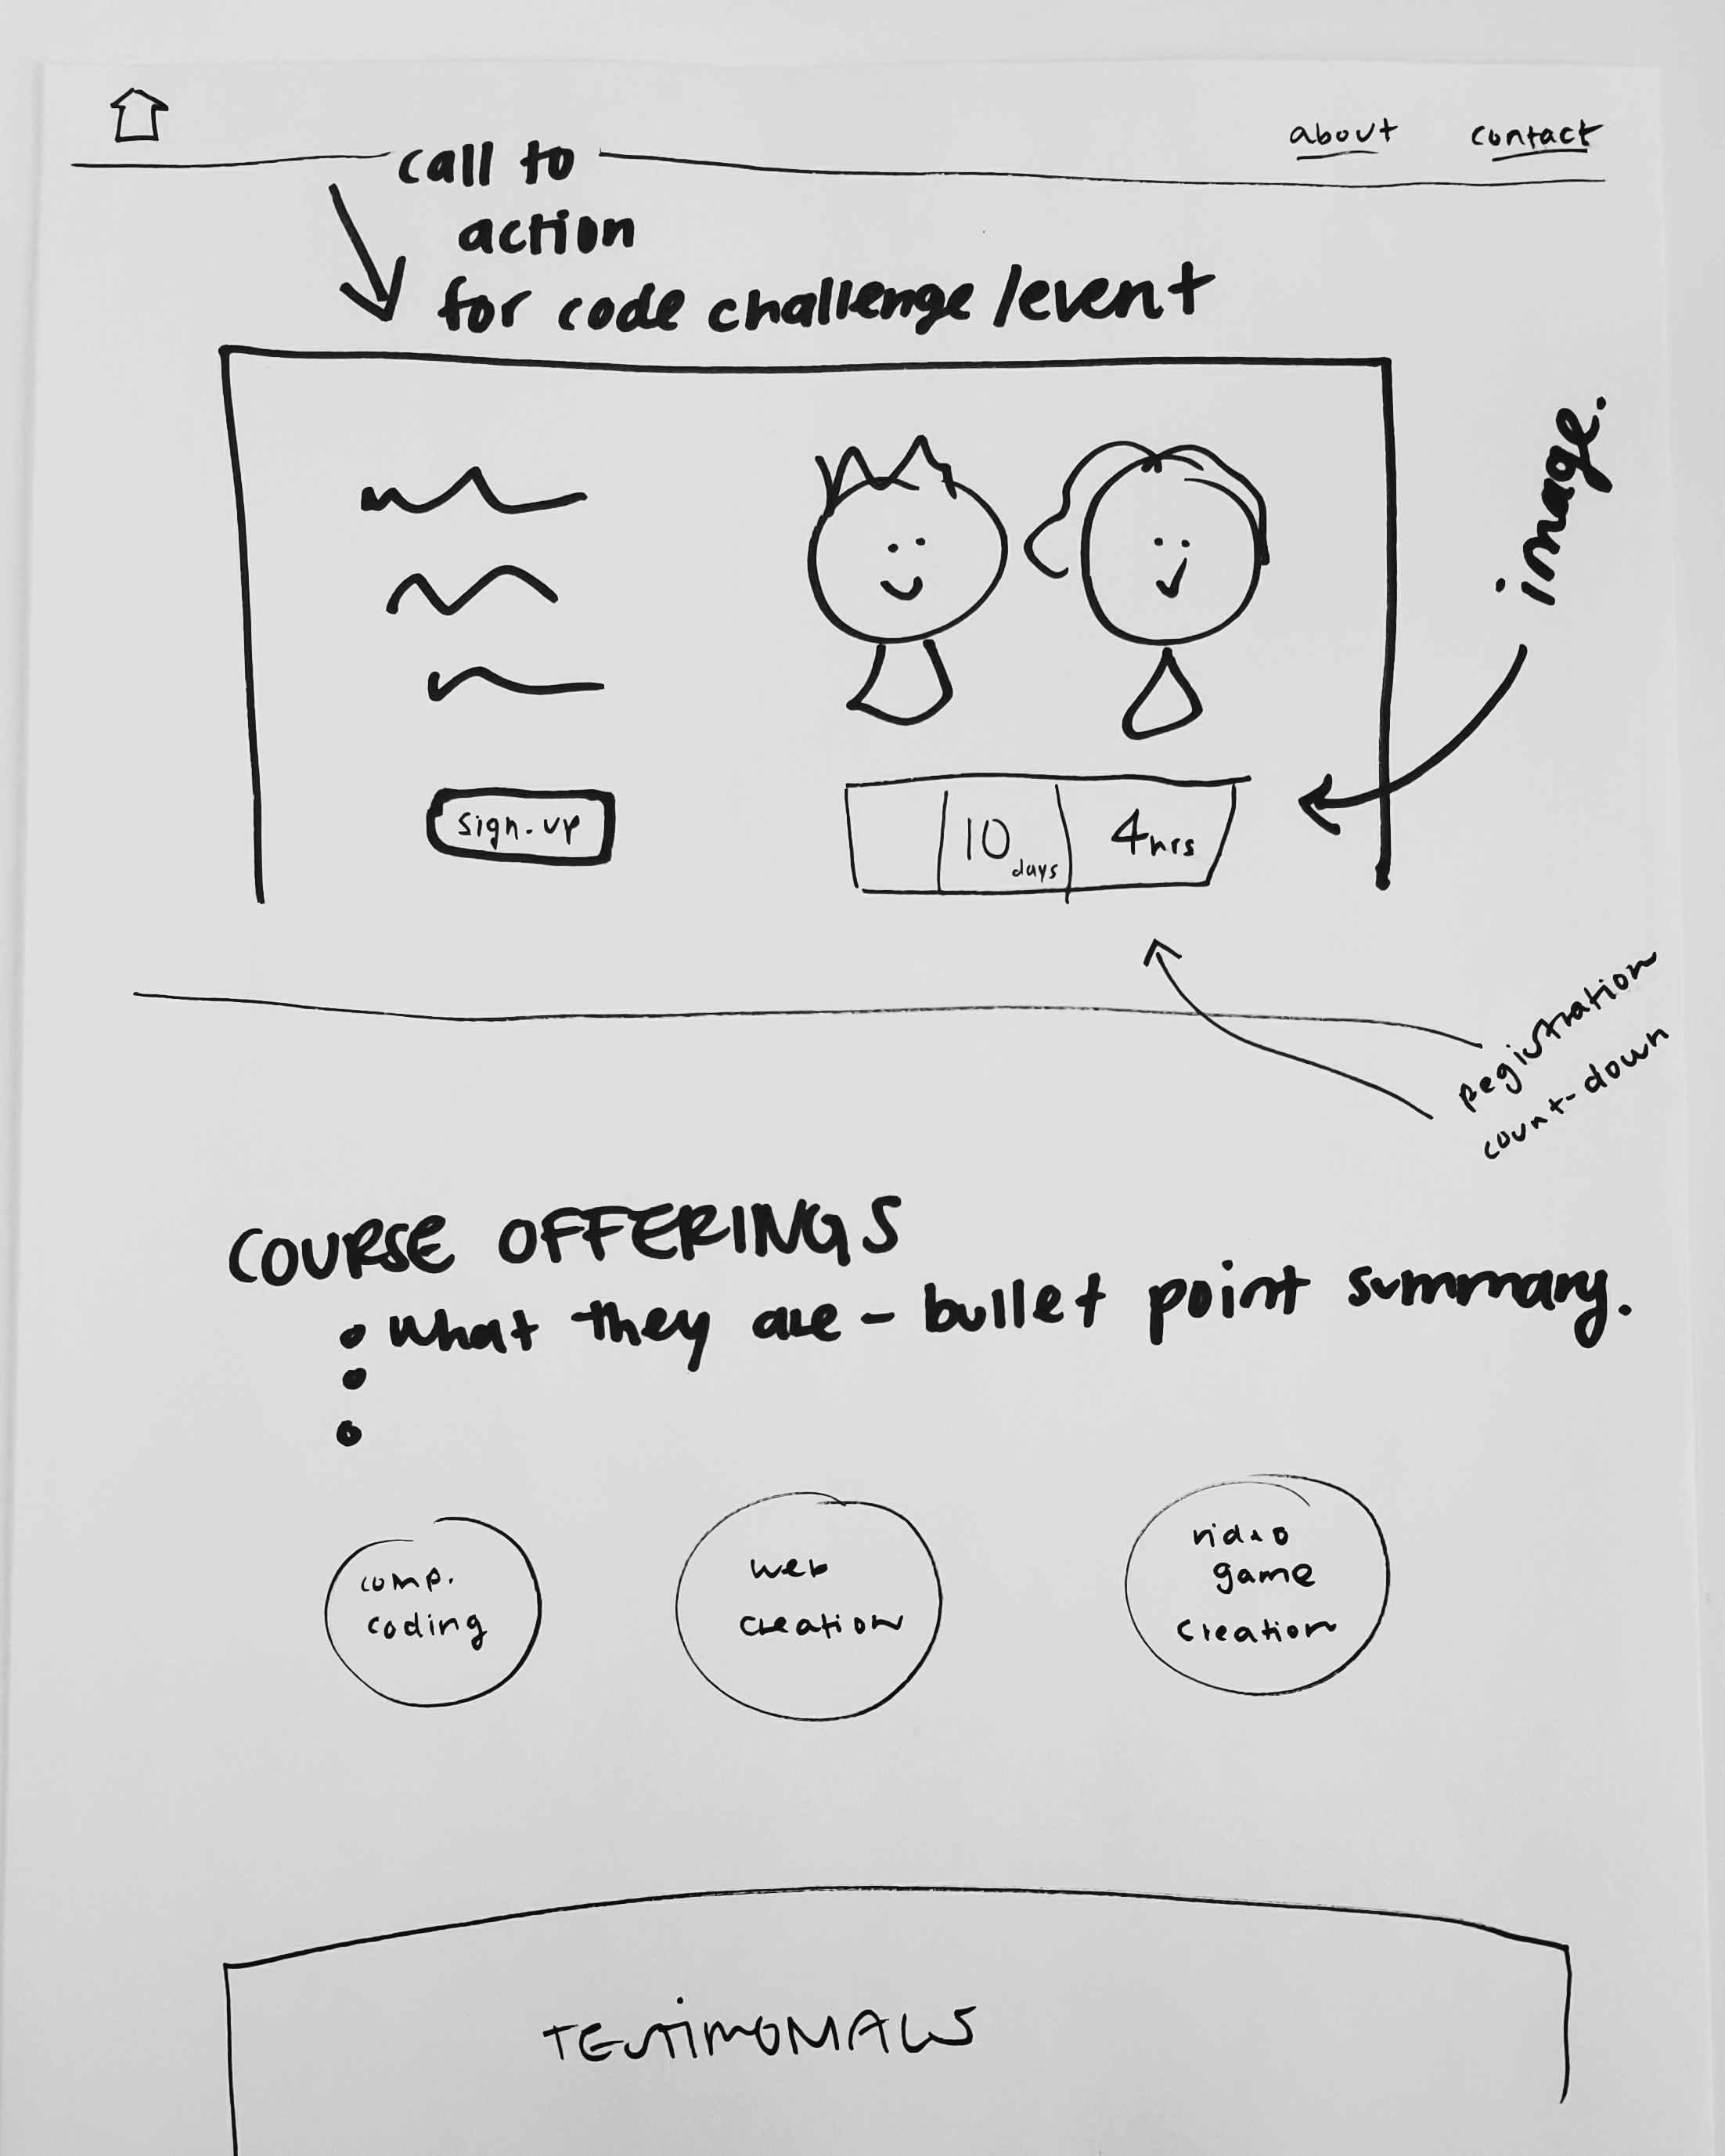 Sketched prototype of new site homepage.